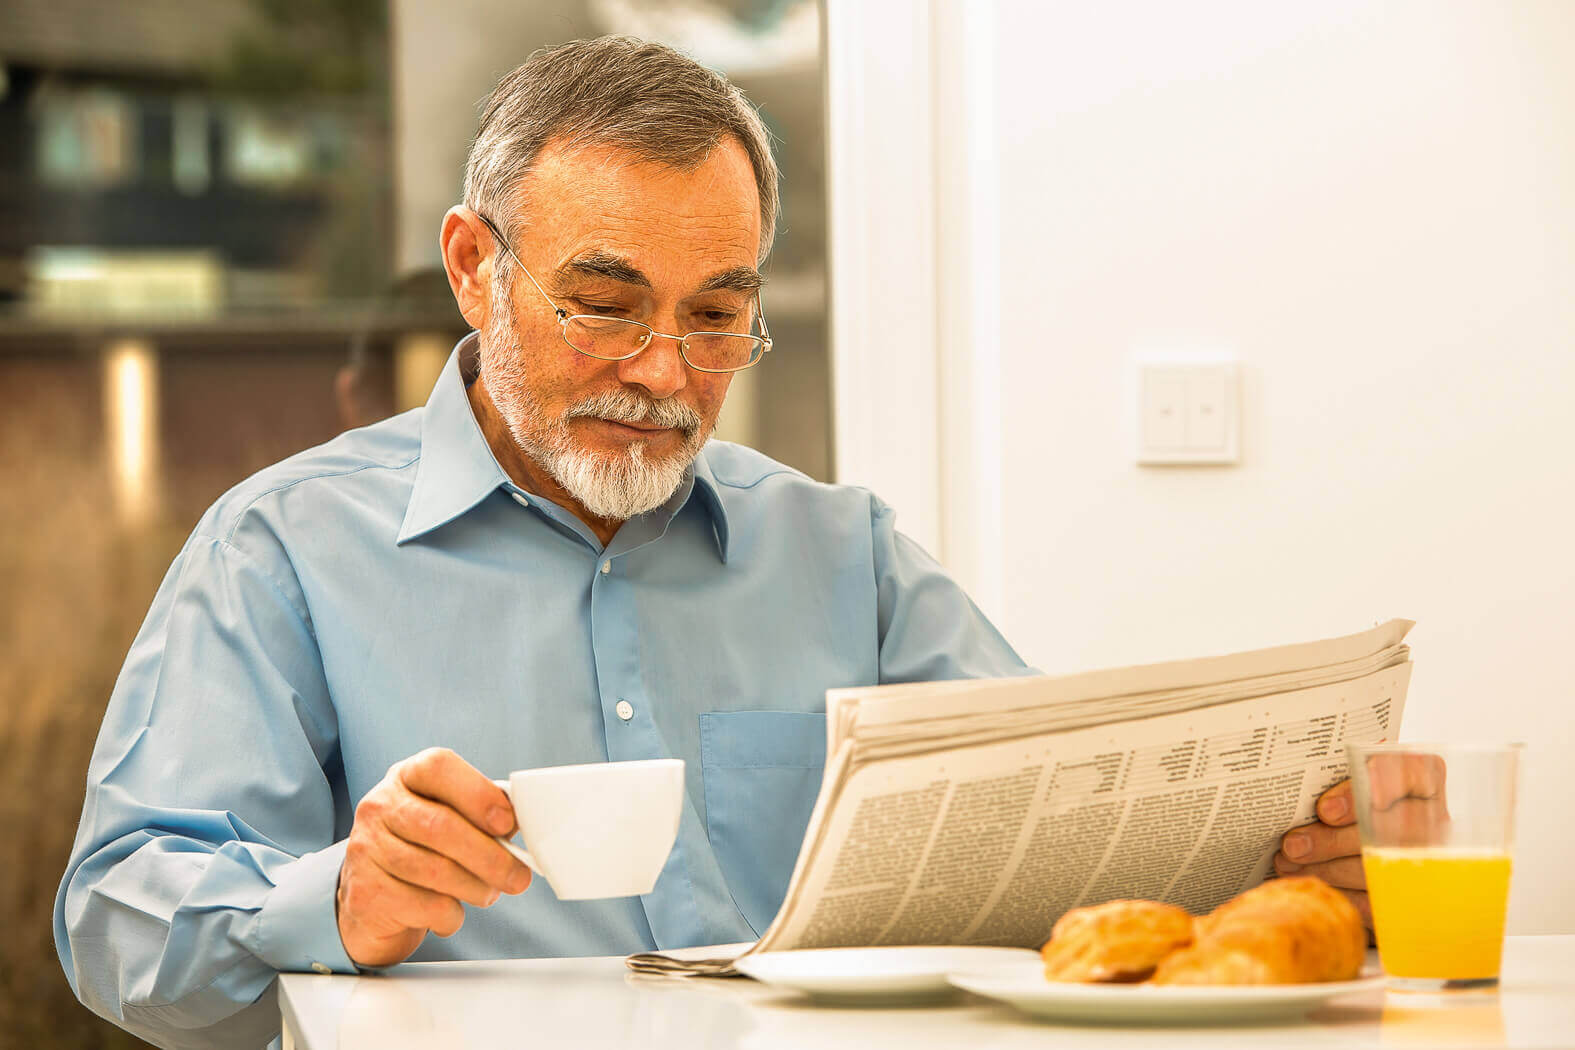 Mature man reading the paper and enjoying a cup of coffee, orange juice and a plate of croissants.